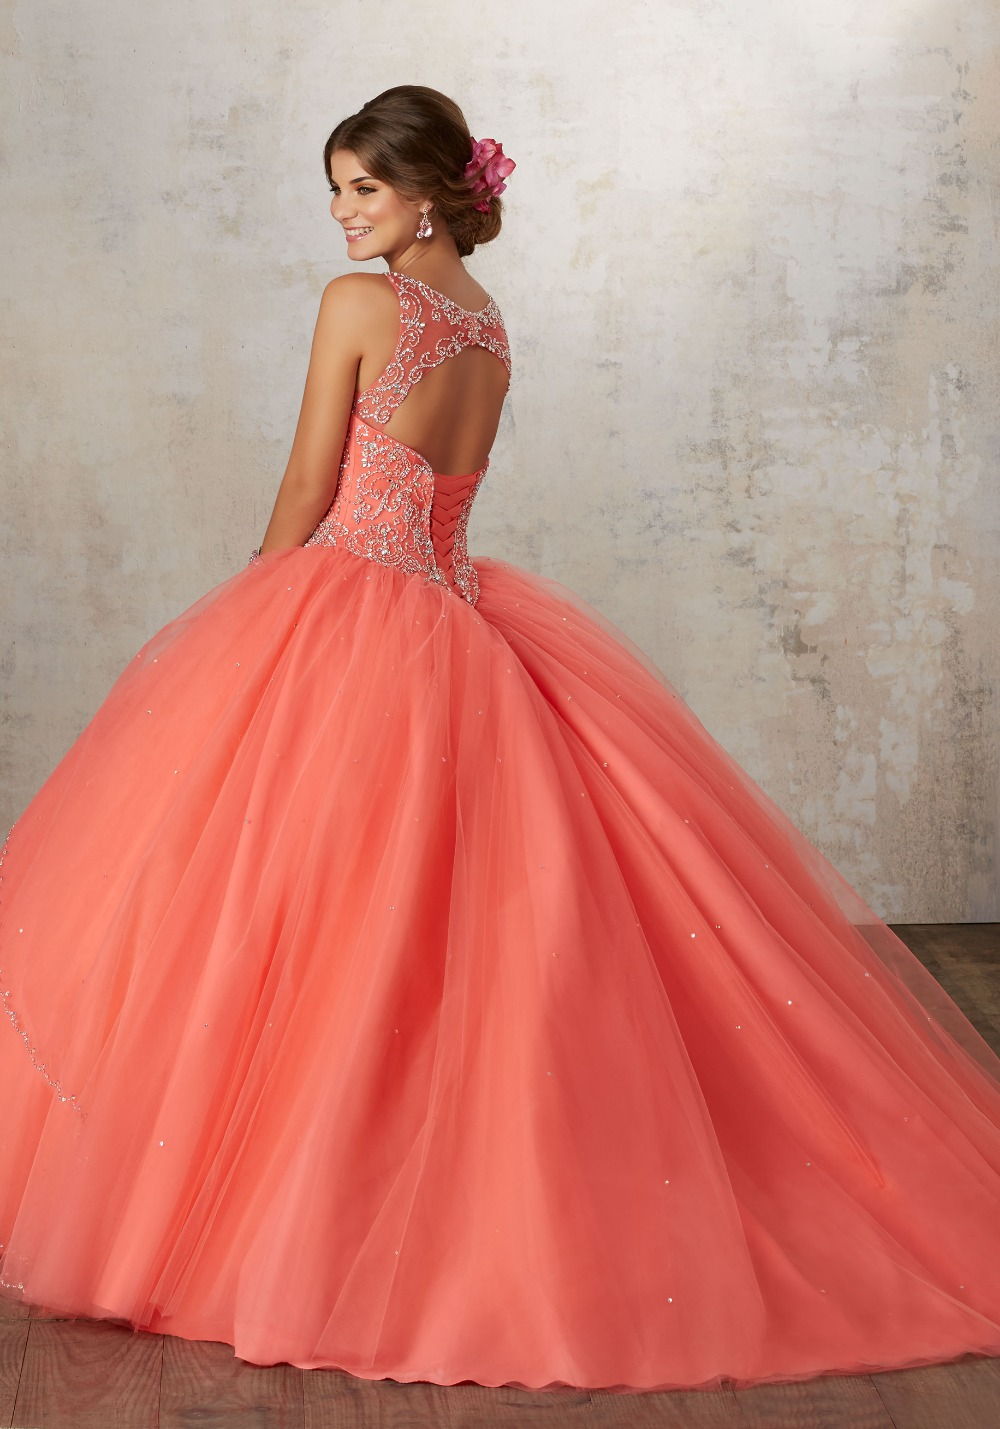 58ce1e3baca Coral Red And Gold Quinceanera Dresses